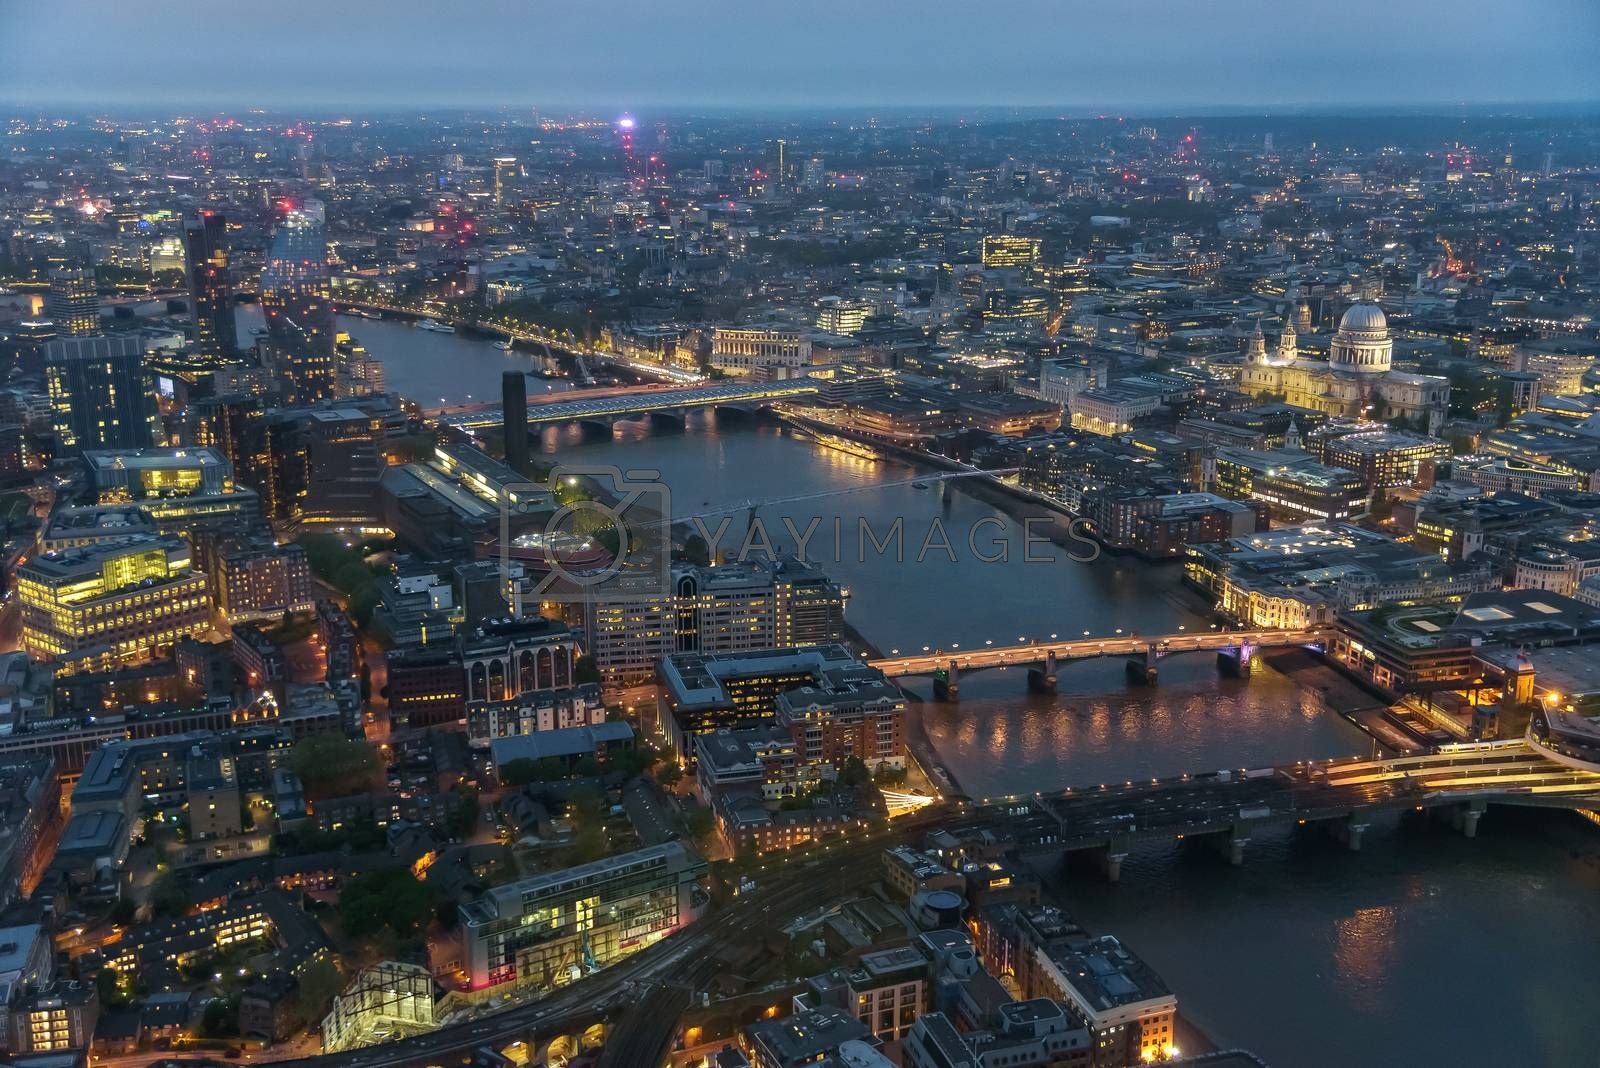 Aerial view of river Thames in London on a cloudy day at dusk